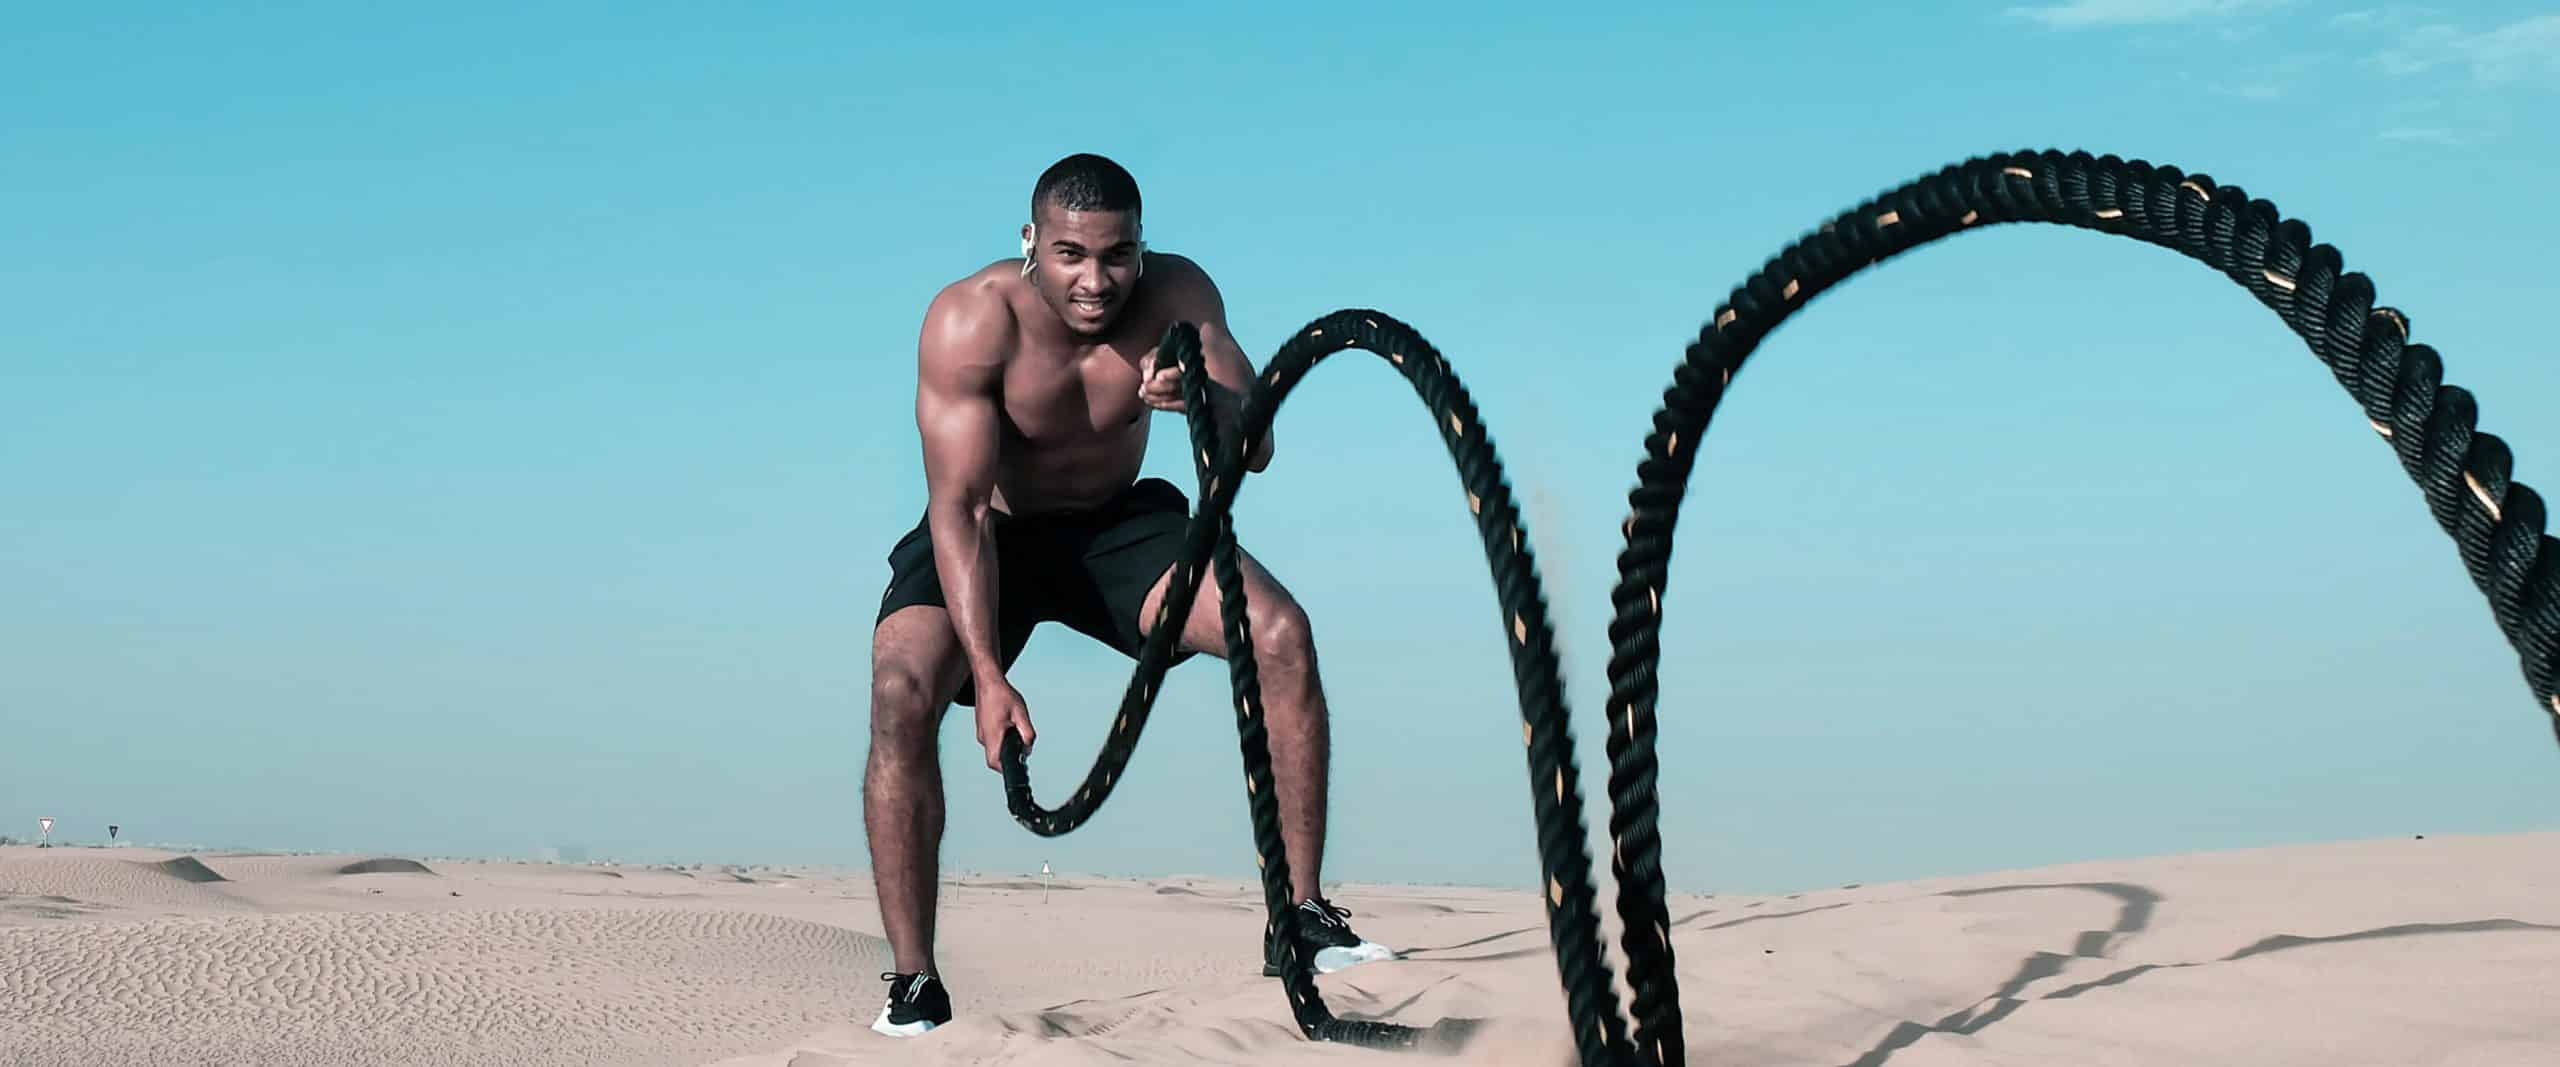 Highly Motivational Fitness Quotes To Get You Going